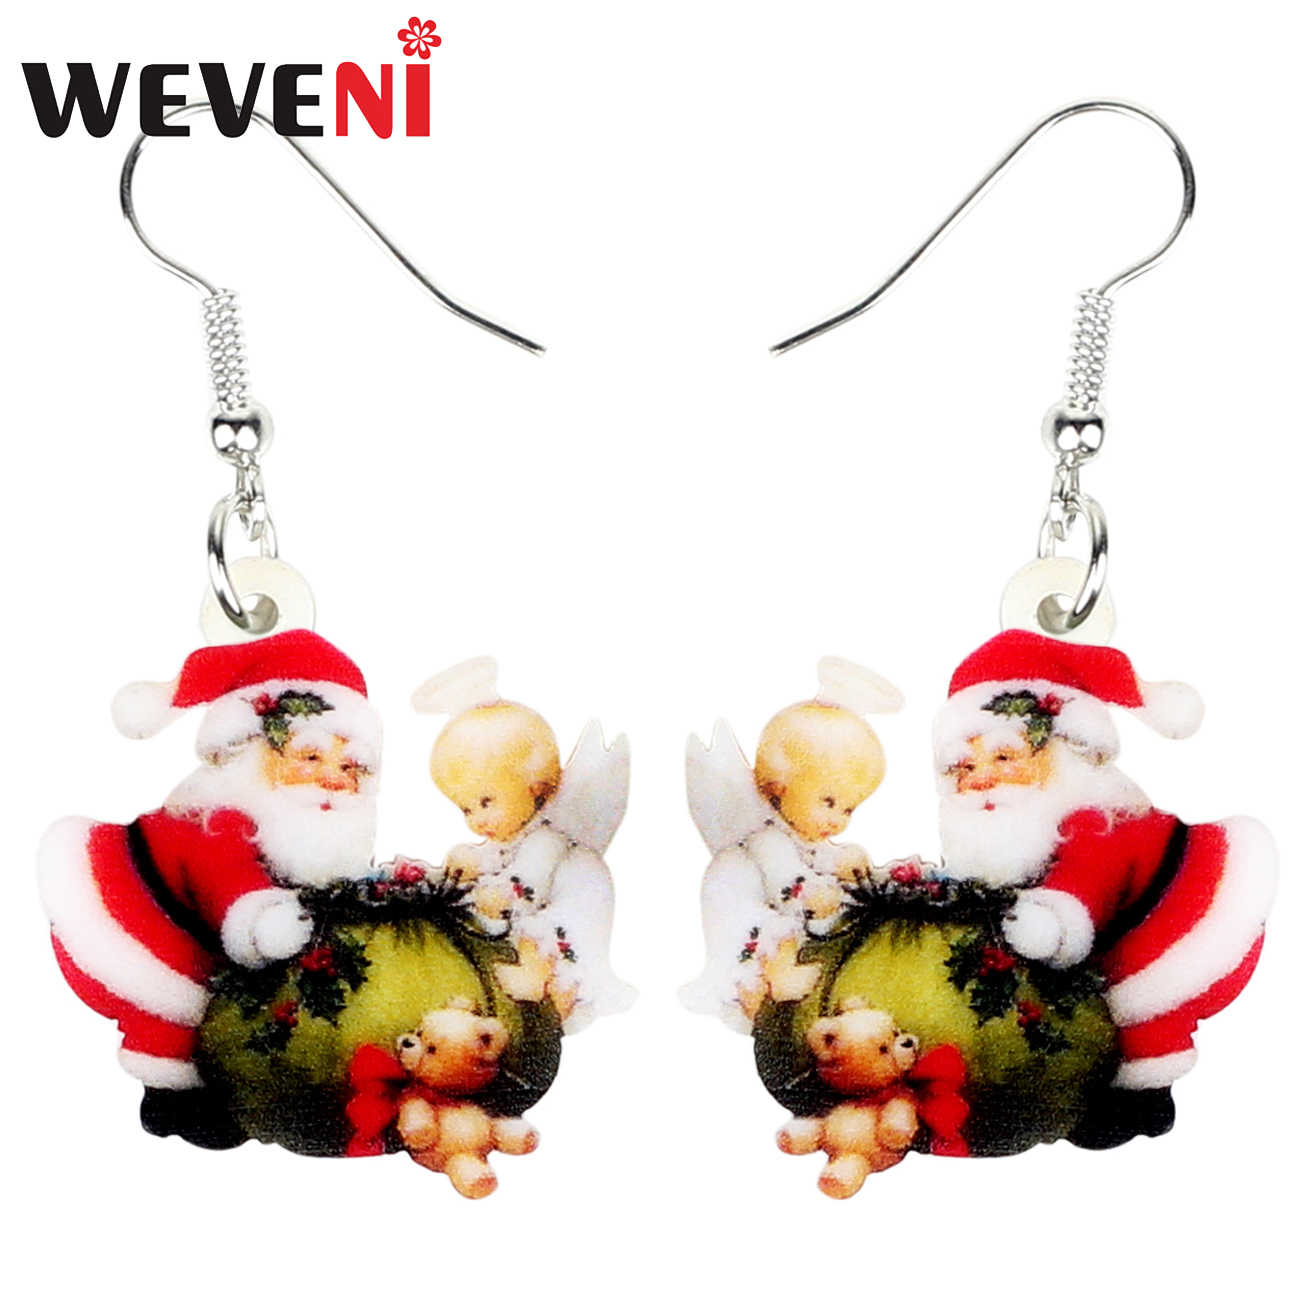 WEVENI Acrylic Christmas Santa Claus Angel Gift Bag Earrings Drop Dangle Decoration Jewelry For Women Girls Charms Wholesale New